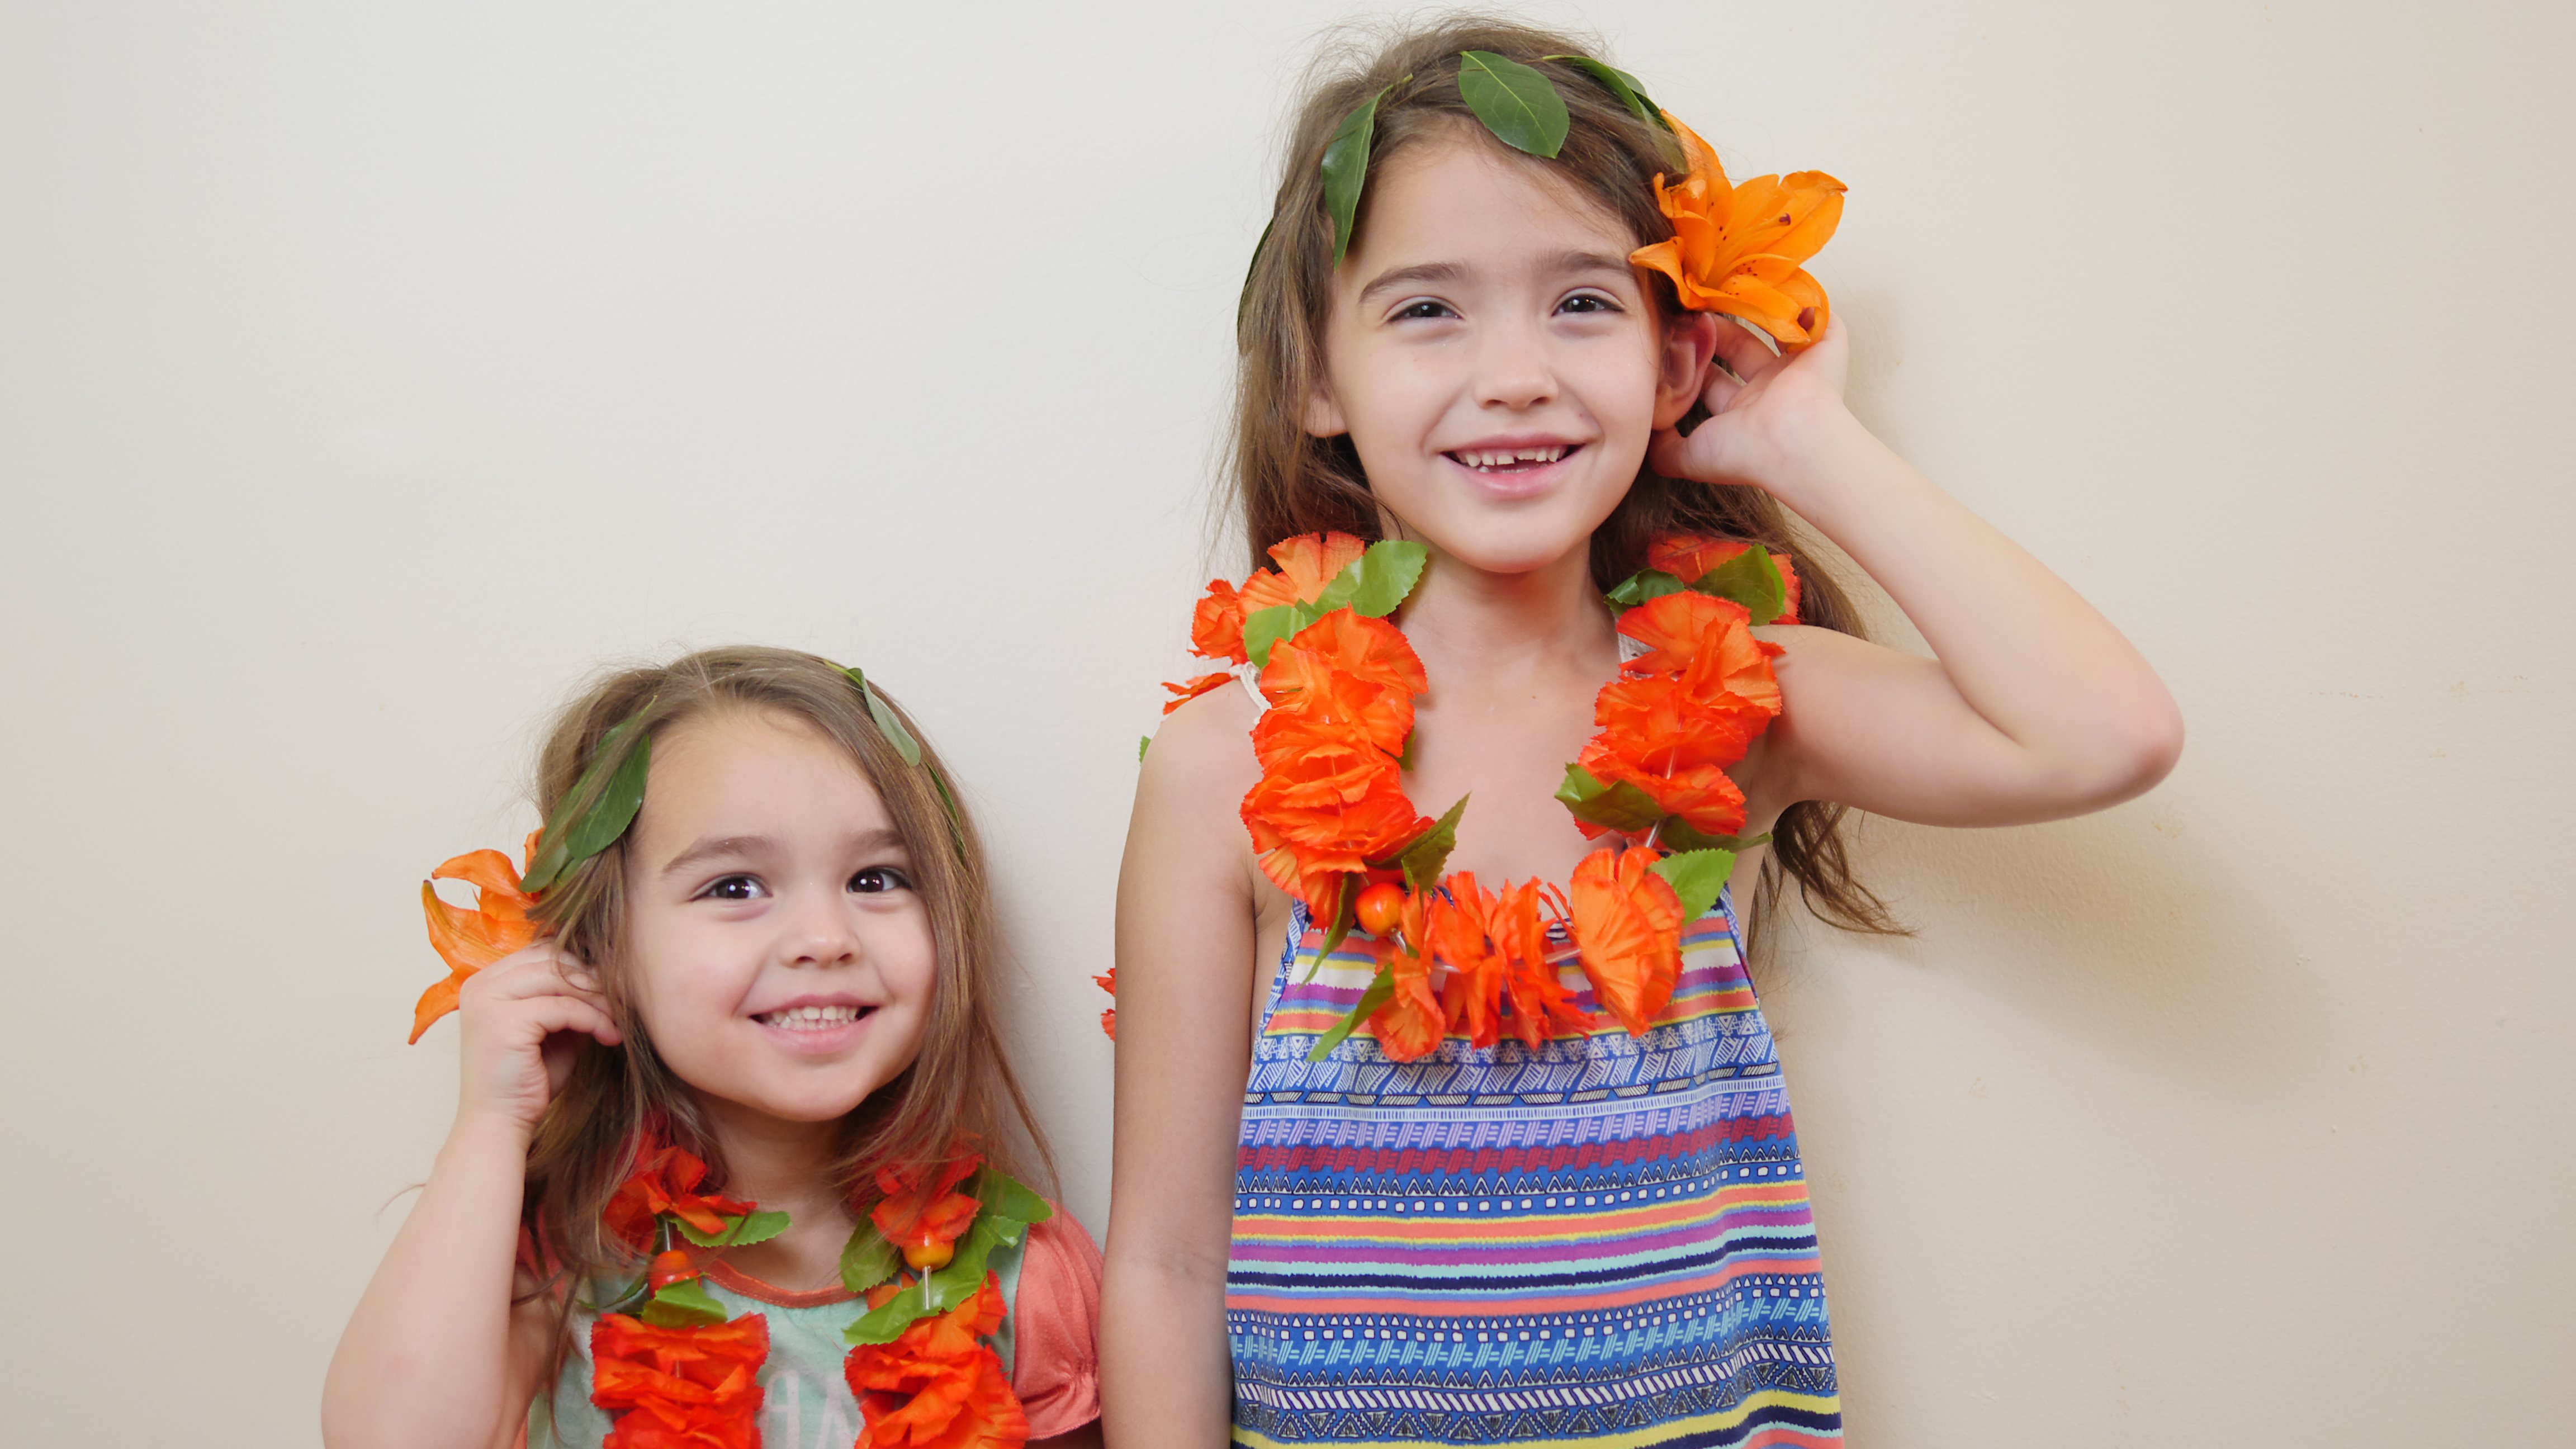 Even if you don't own the Disney Moana costume, you can easily make an outfit for a Moana party. Create a leaf headband by sewing leaves together with needle and thread. Then, buy tropical flowers and a matching lei.